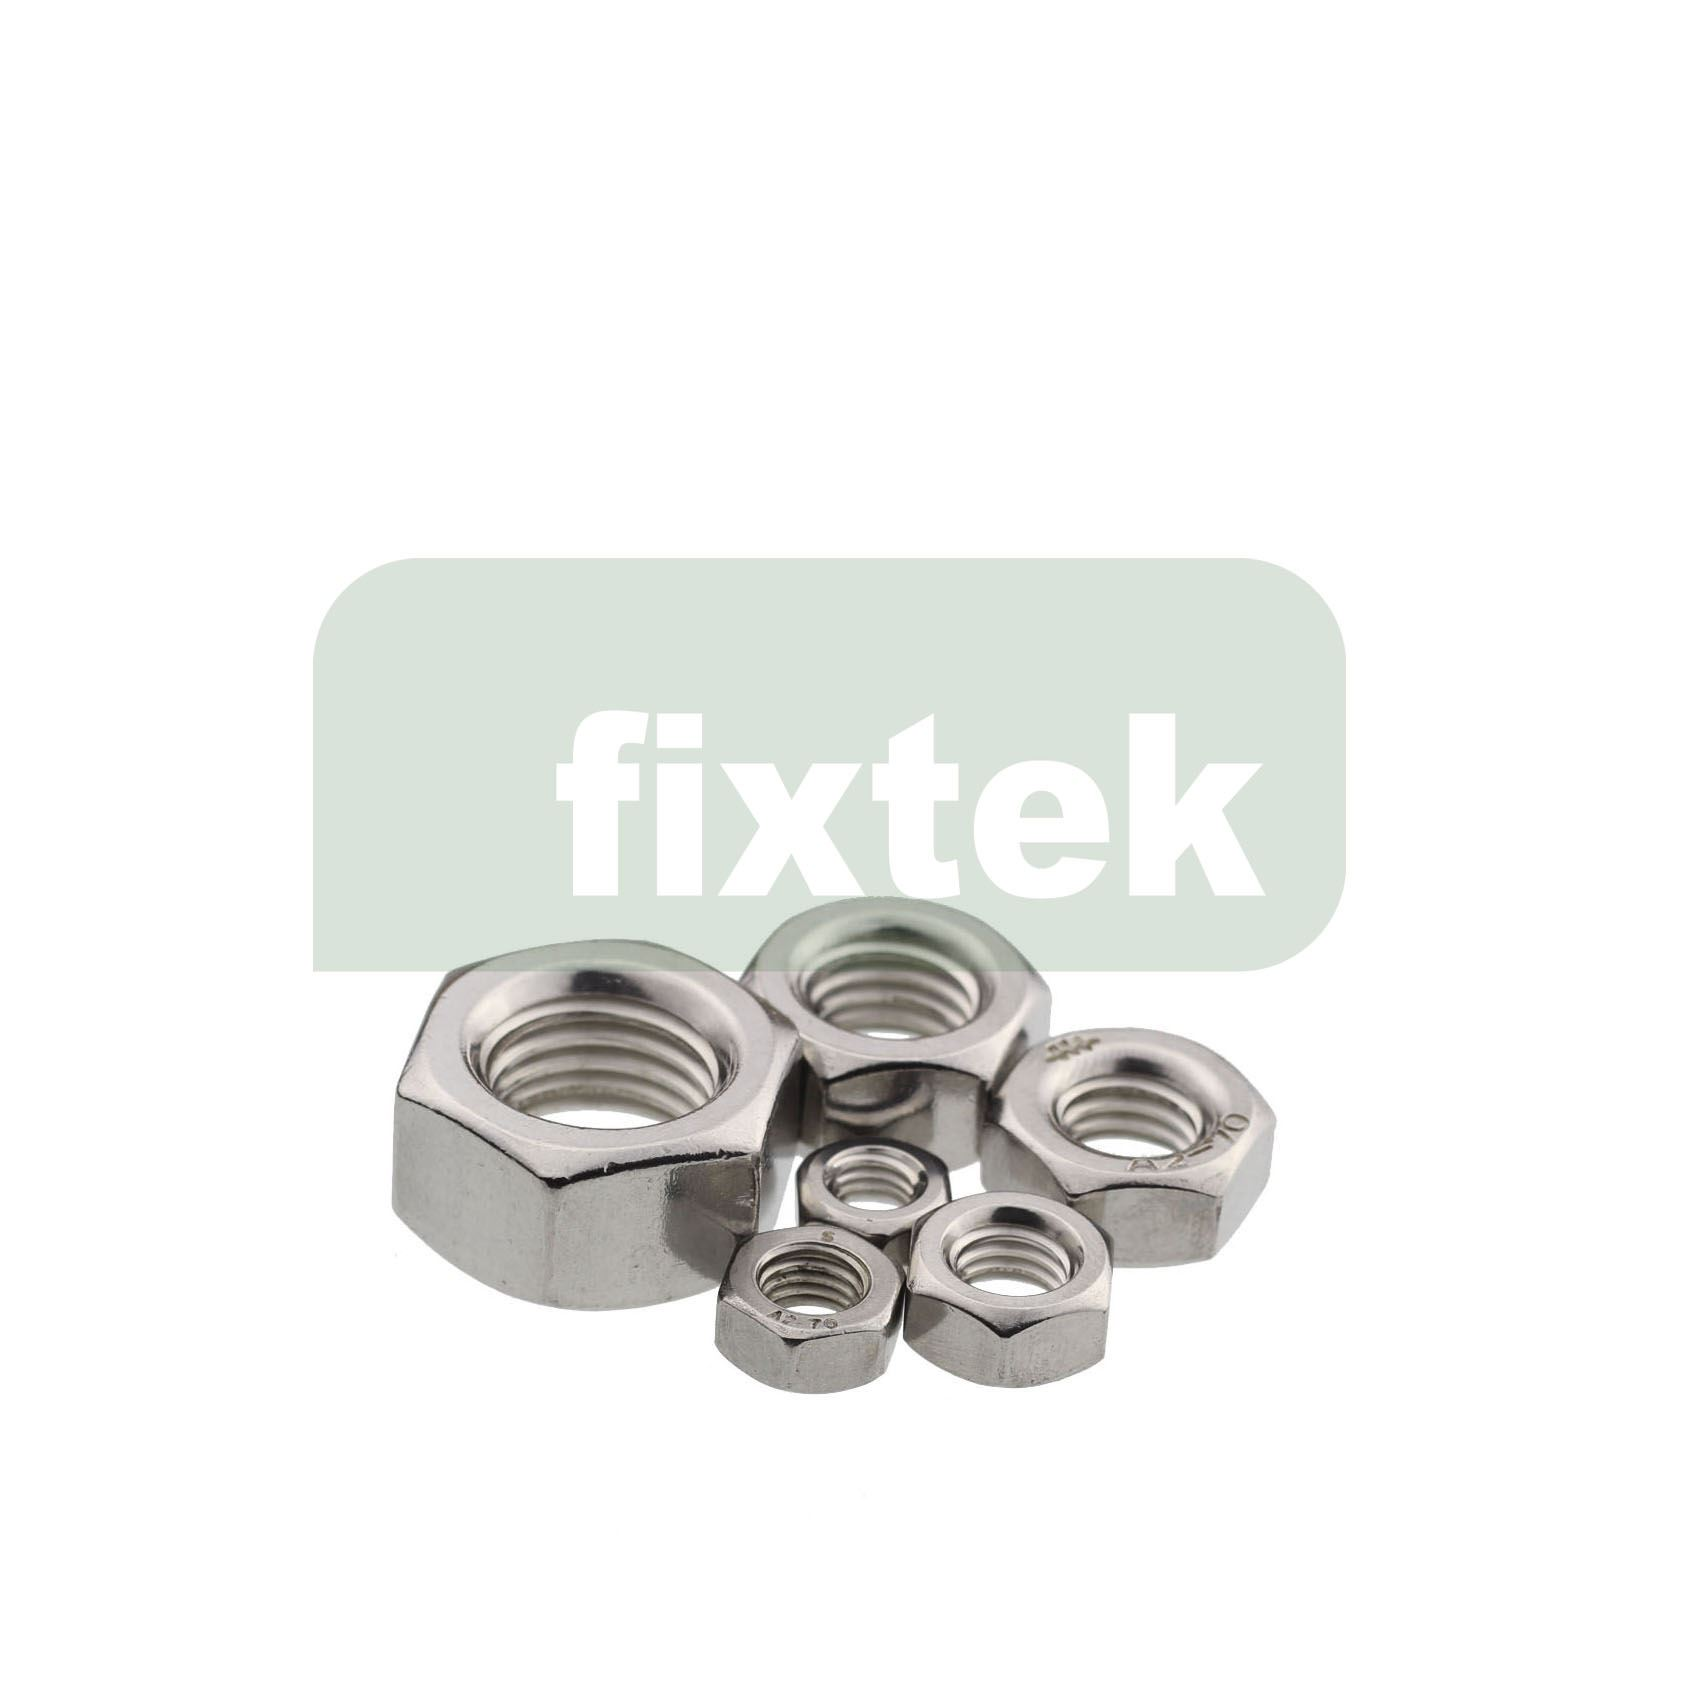 A2 STAINLESS STEEL DOME NUTS QUAD BIKE 16mm DIN 1587 METRIC THREAD M16